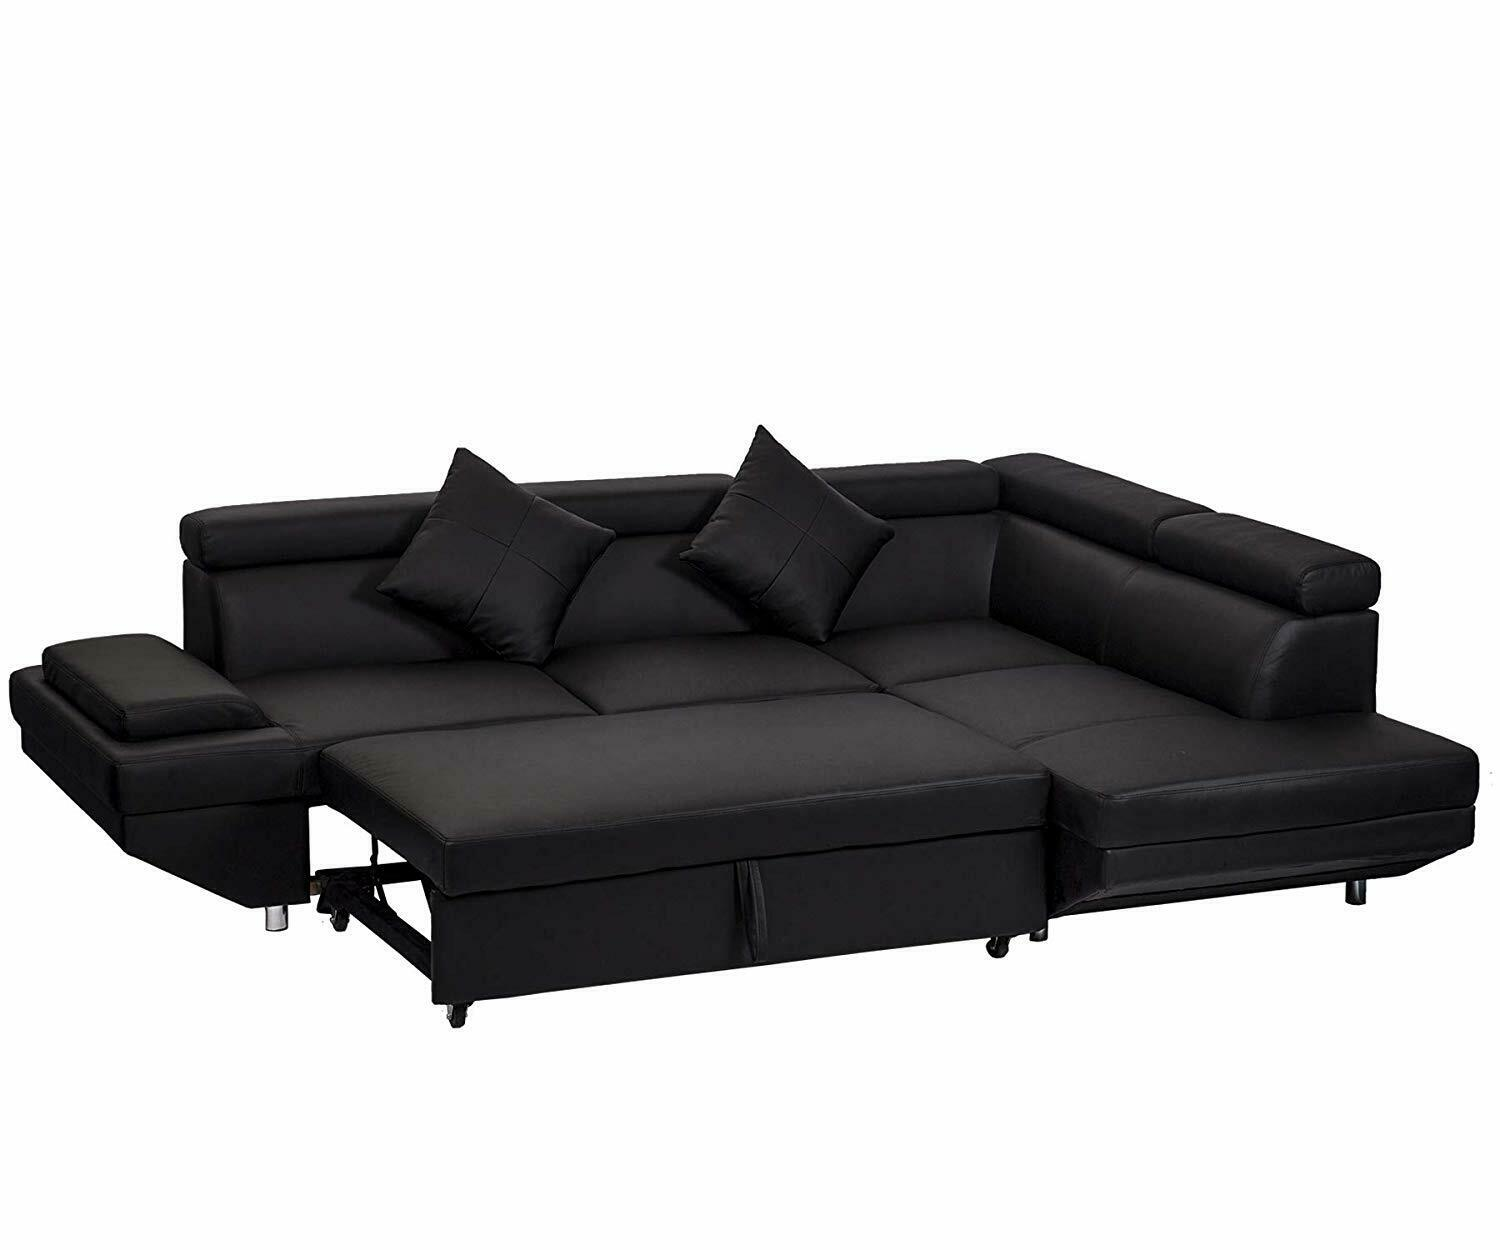 Details about Contemporary Sectional Modern Sofa Bed - Black with  Functional Armrest / Back R